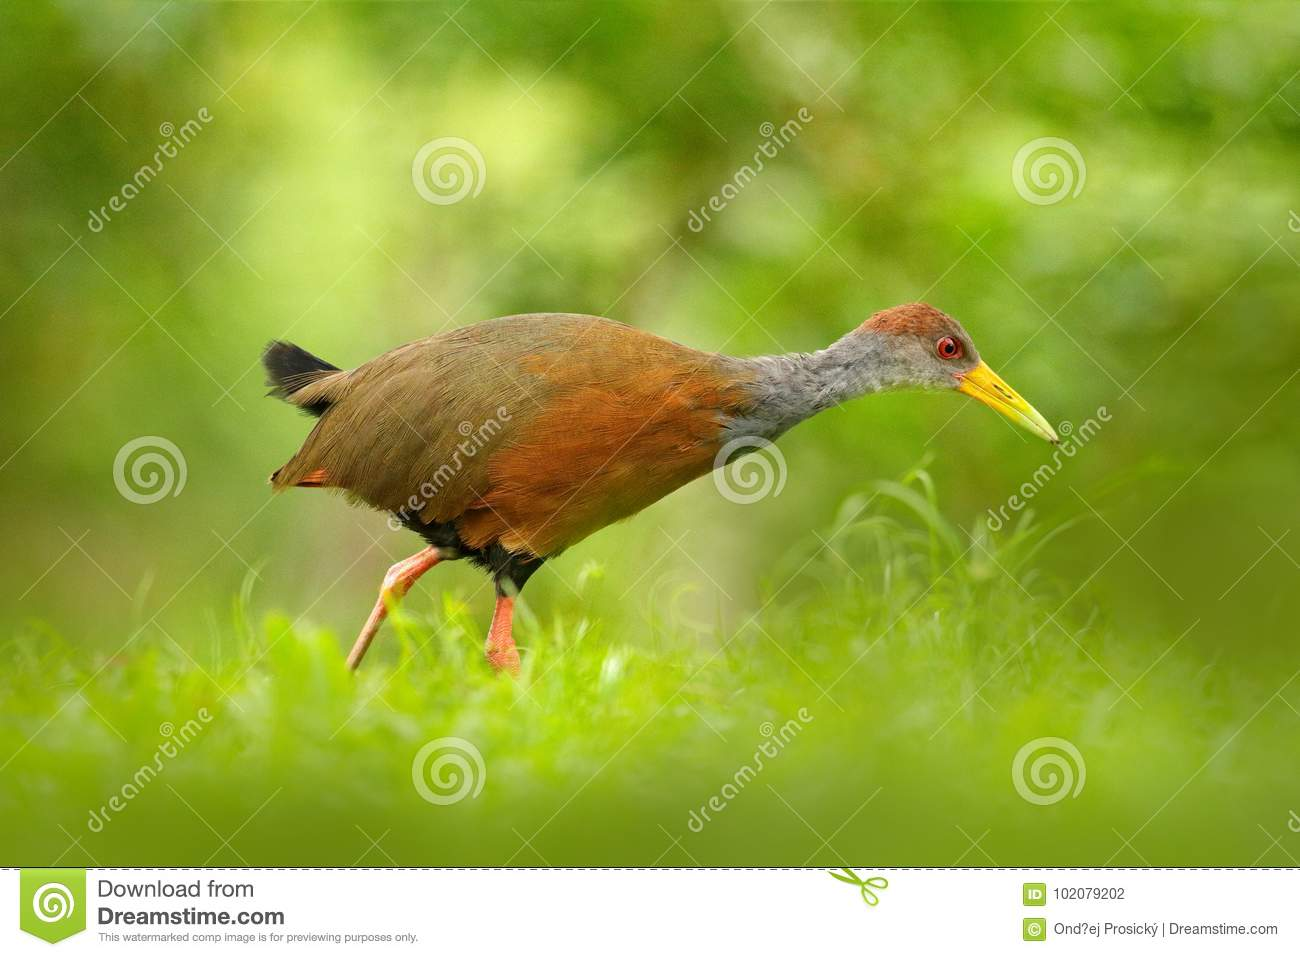 Gray-necked Wood-Rail, Aramides cajanea, walking on the green grass in nature. Heron in the dark tropic forest. Bird in the nature